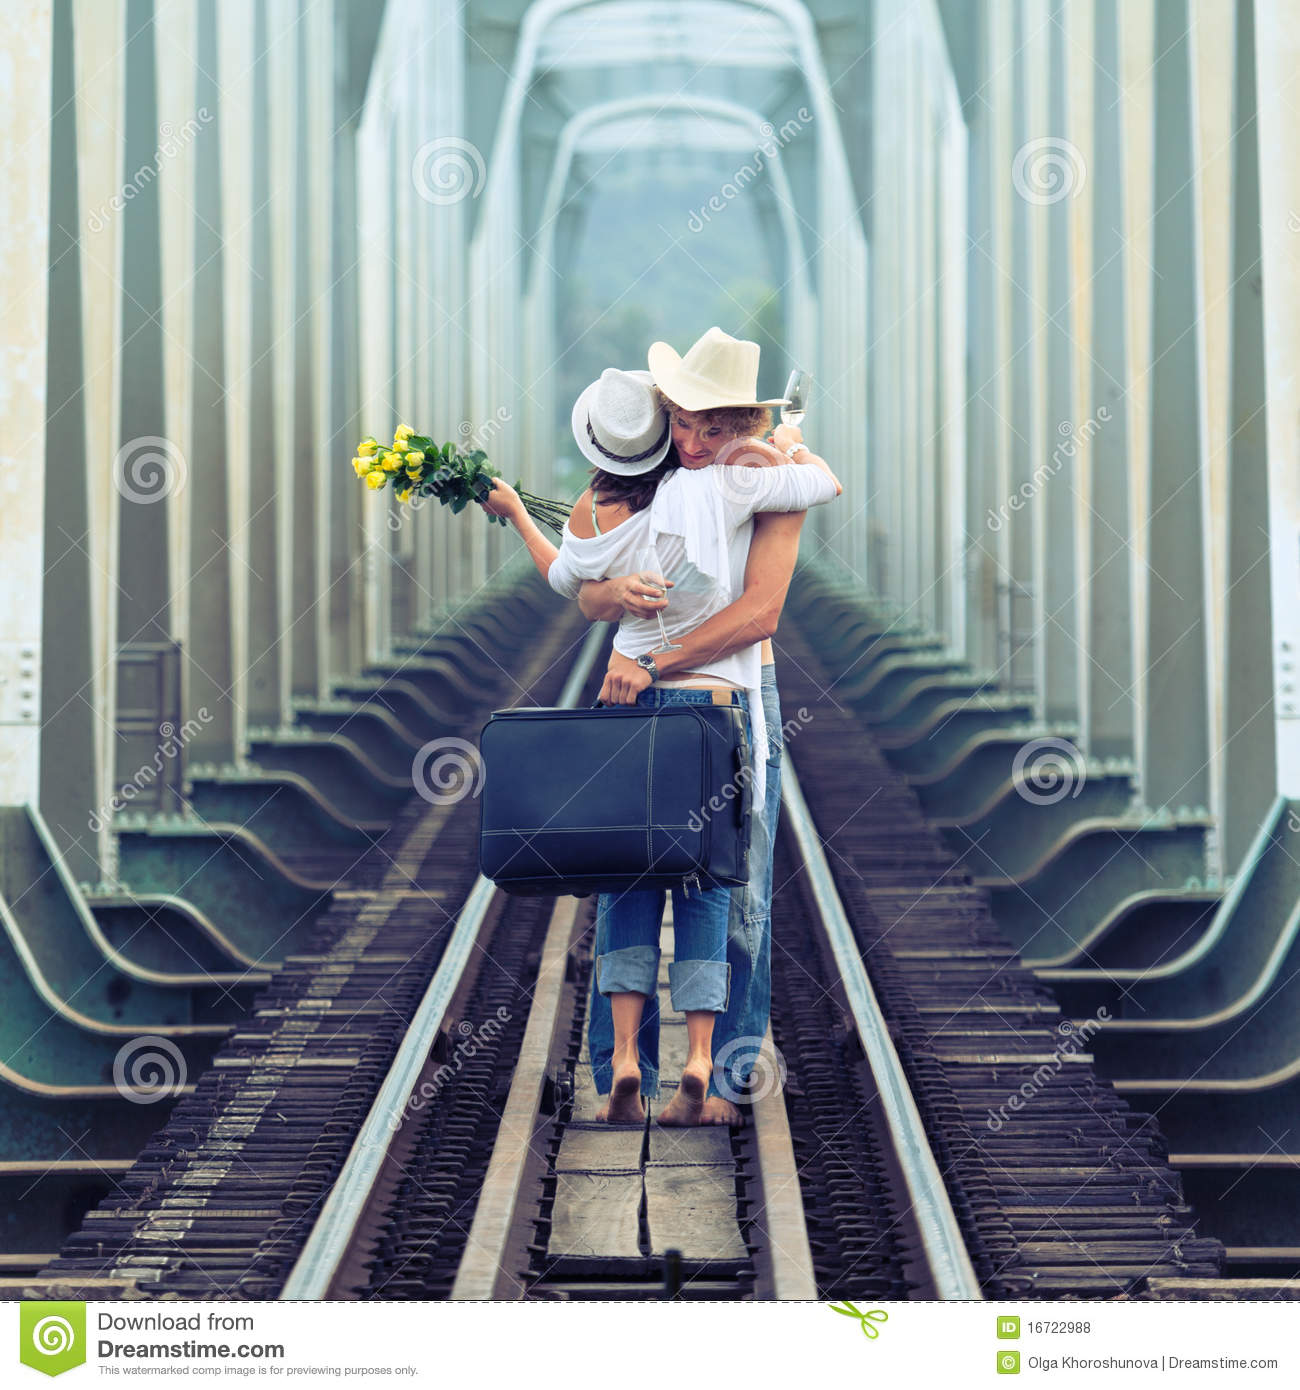 Couple on train tracks